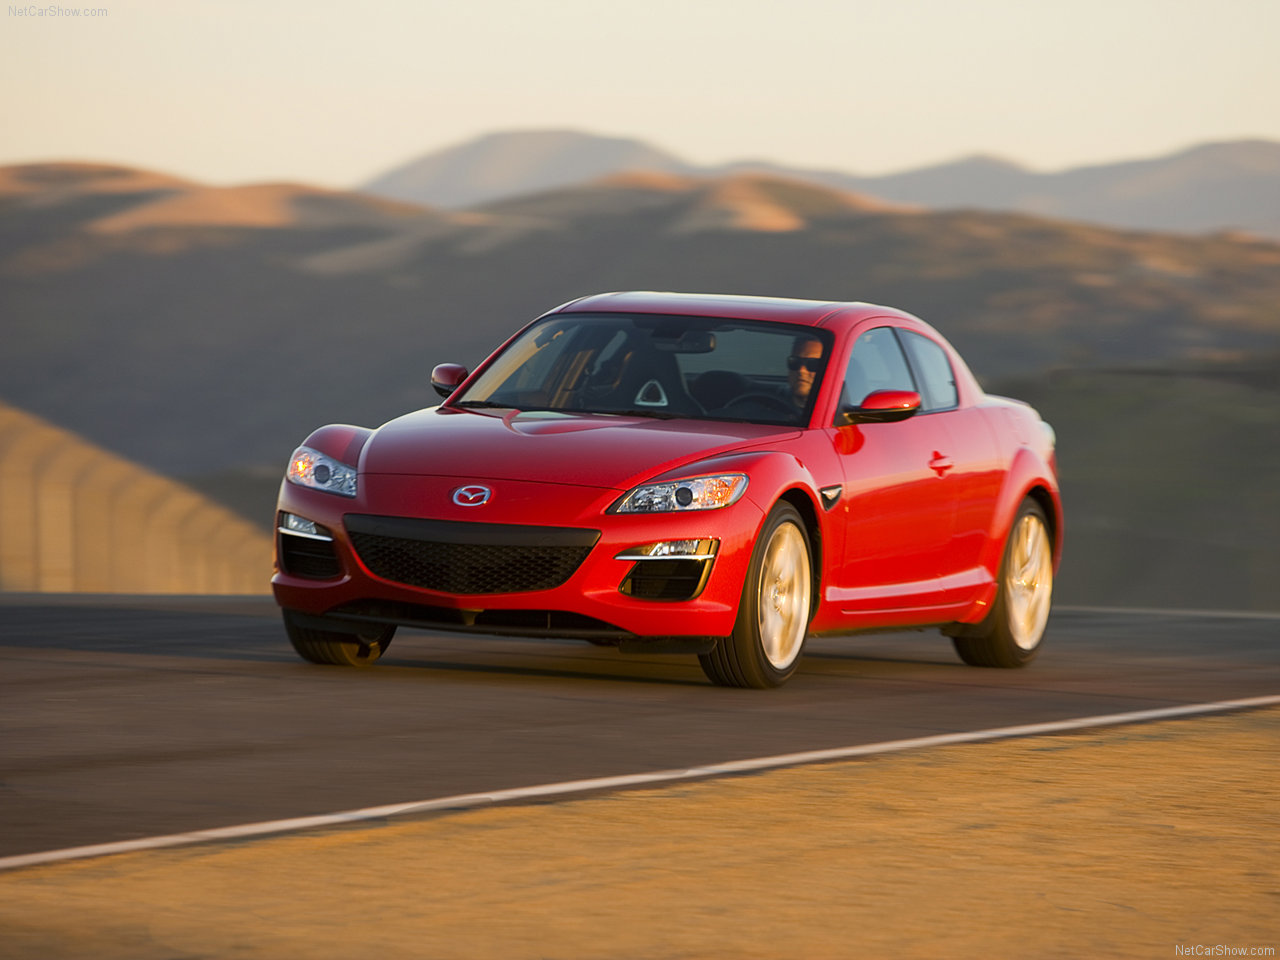 Mazda rx-7/rx-8 coming in 2017 with all new 300hp rotary engine